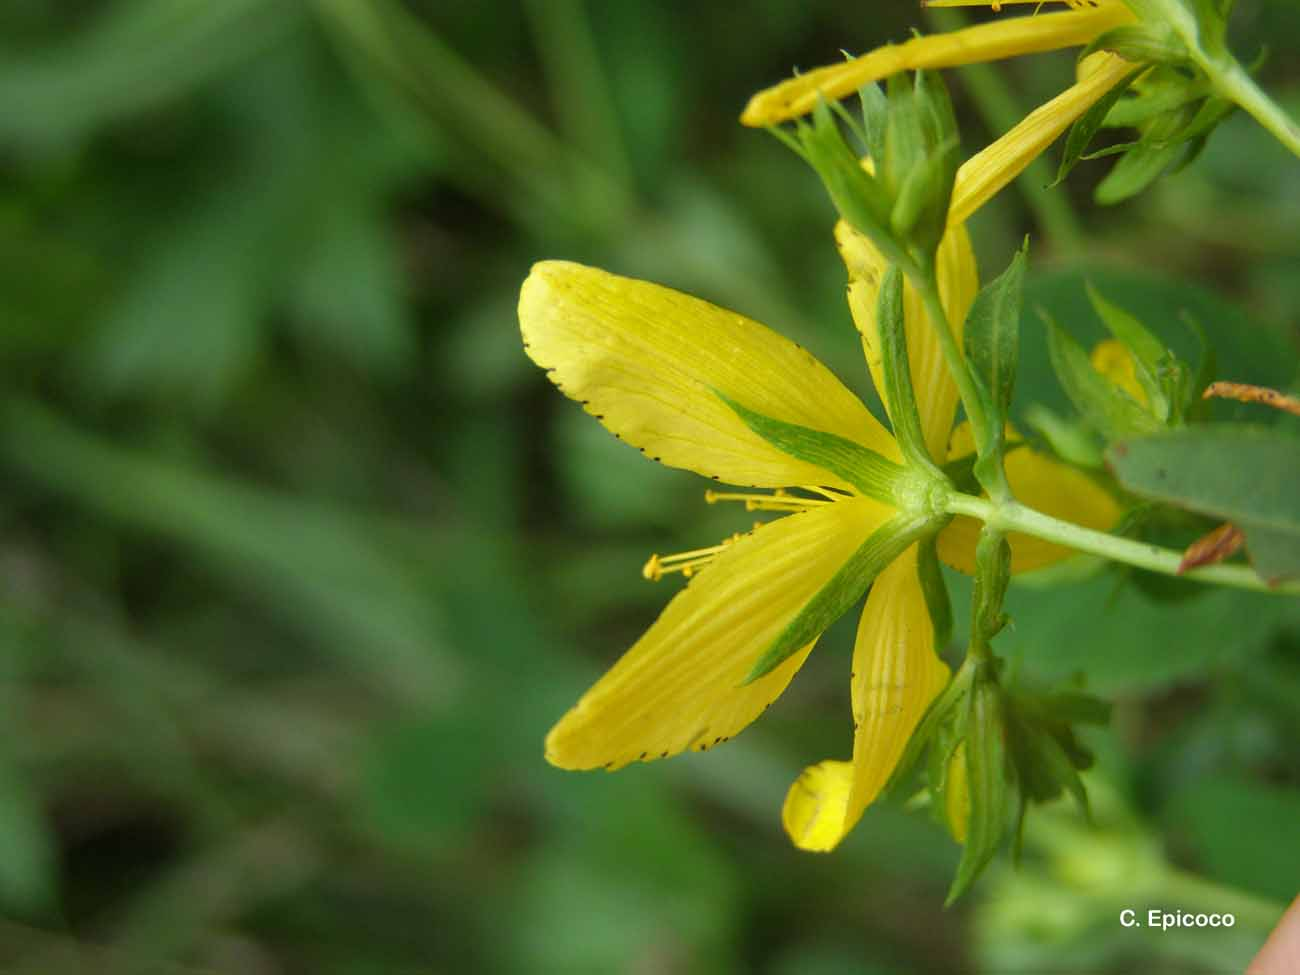 Hypericum perforatum